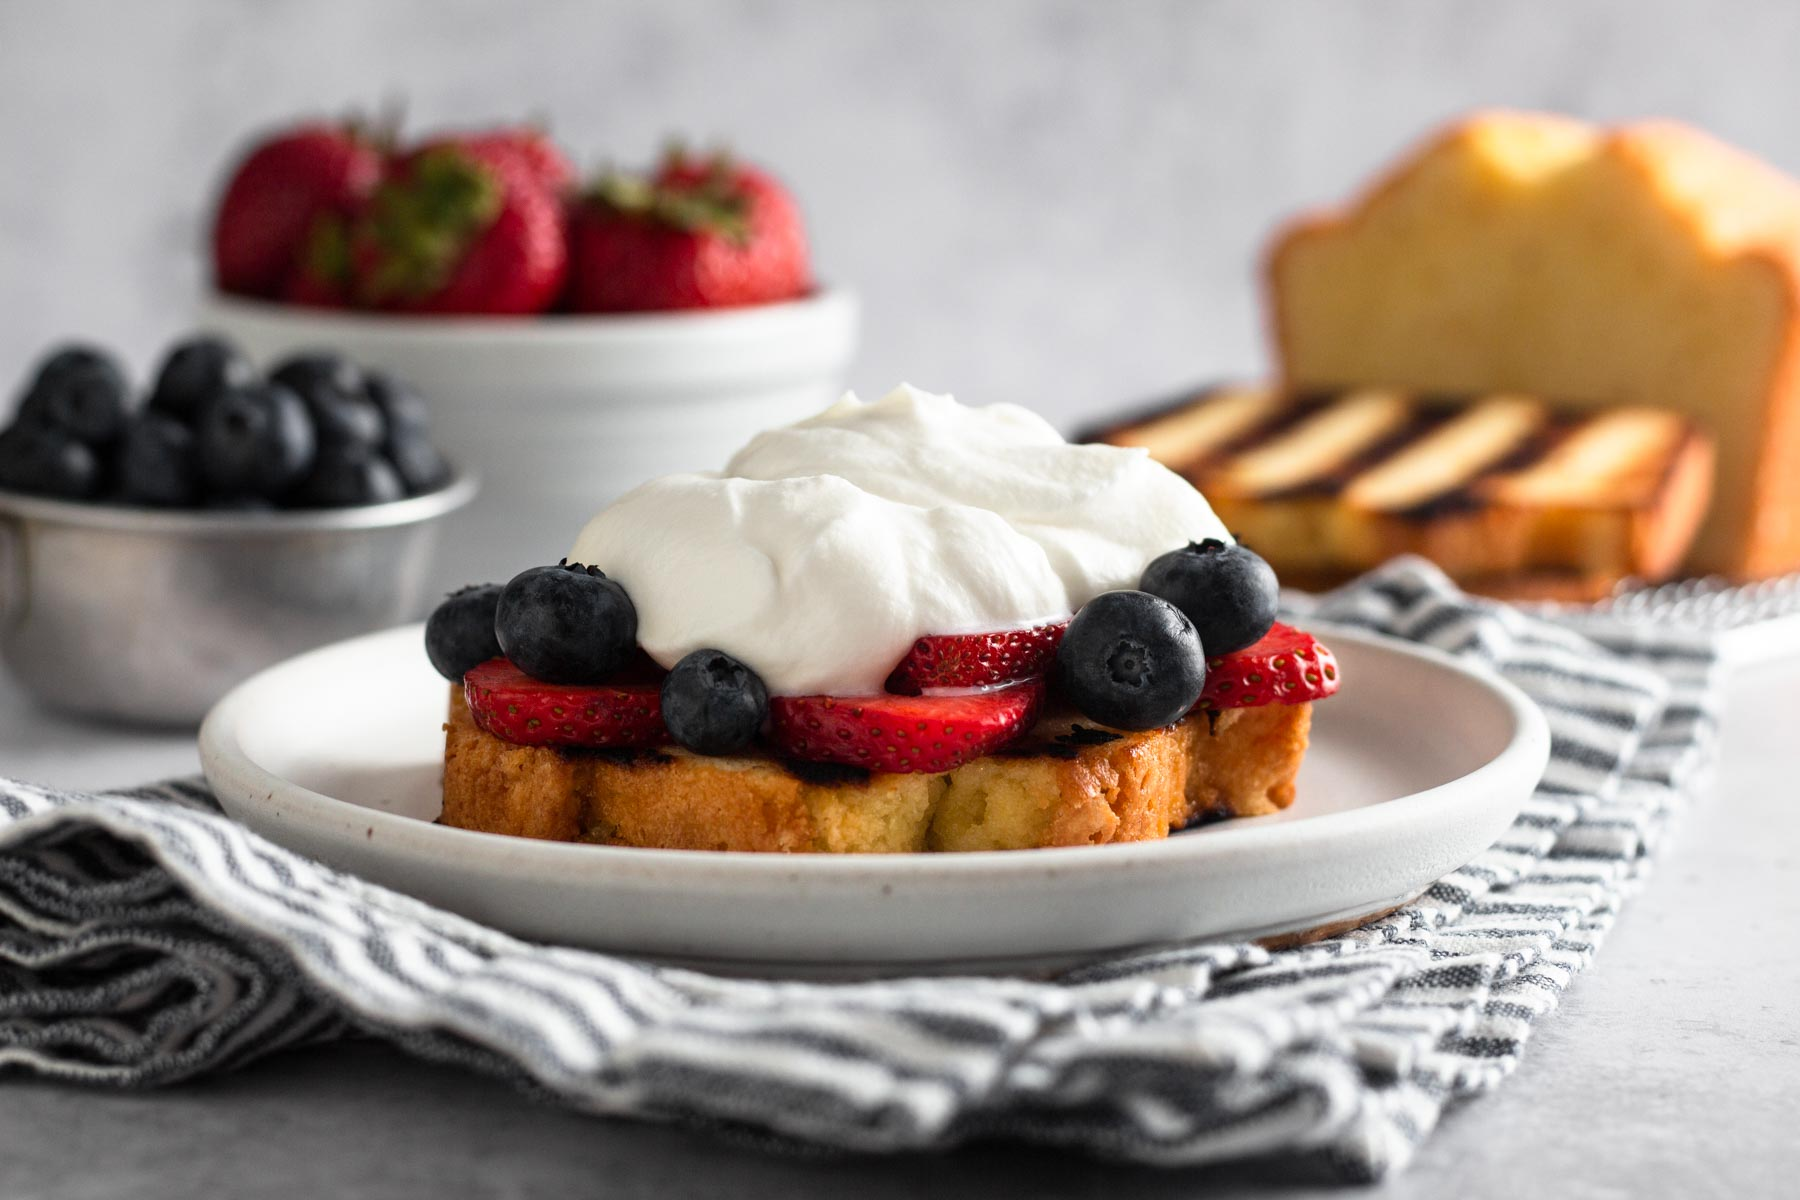 side view of a slice of pound cake topped with sliced strawberries, blueberries, and whipped cream